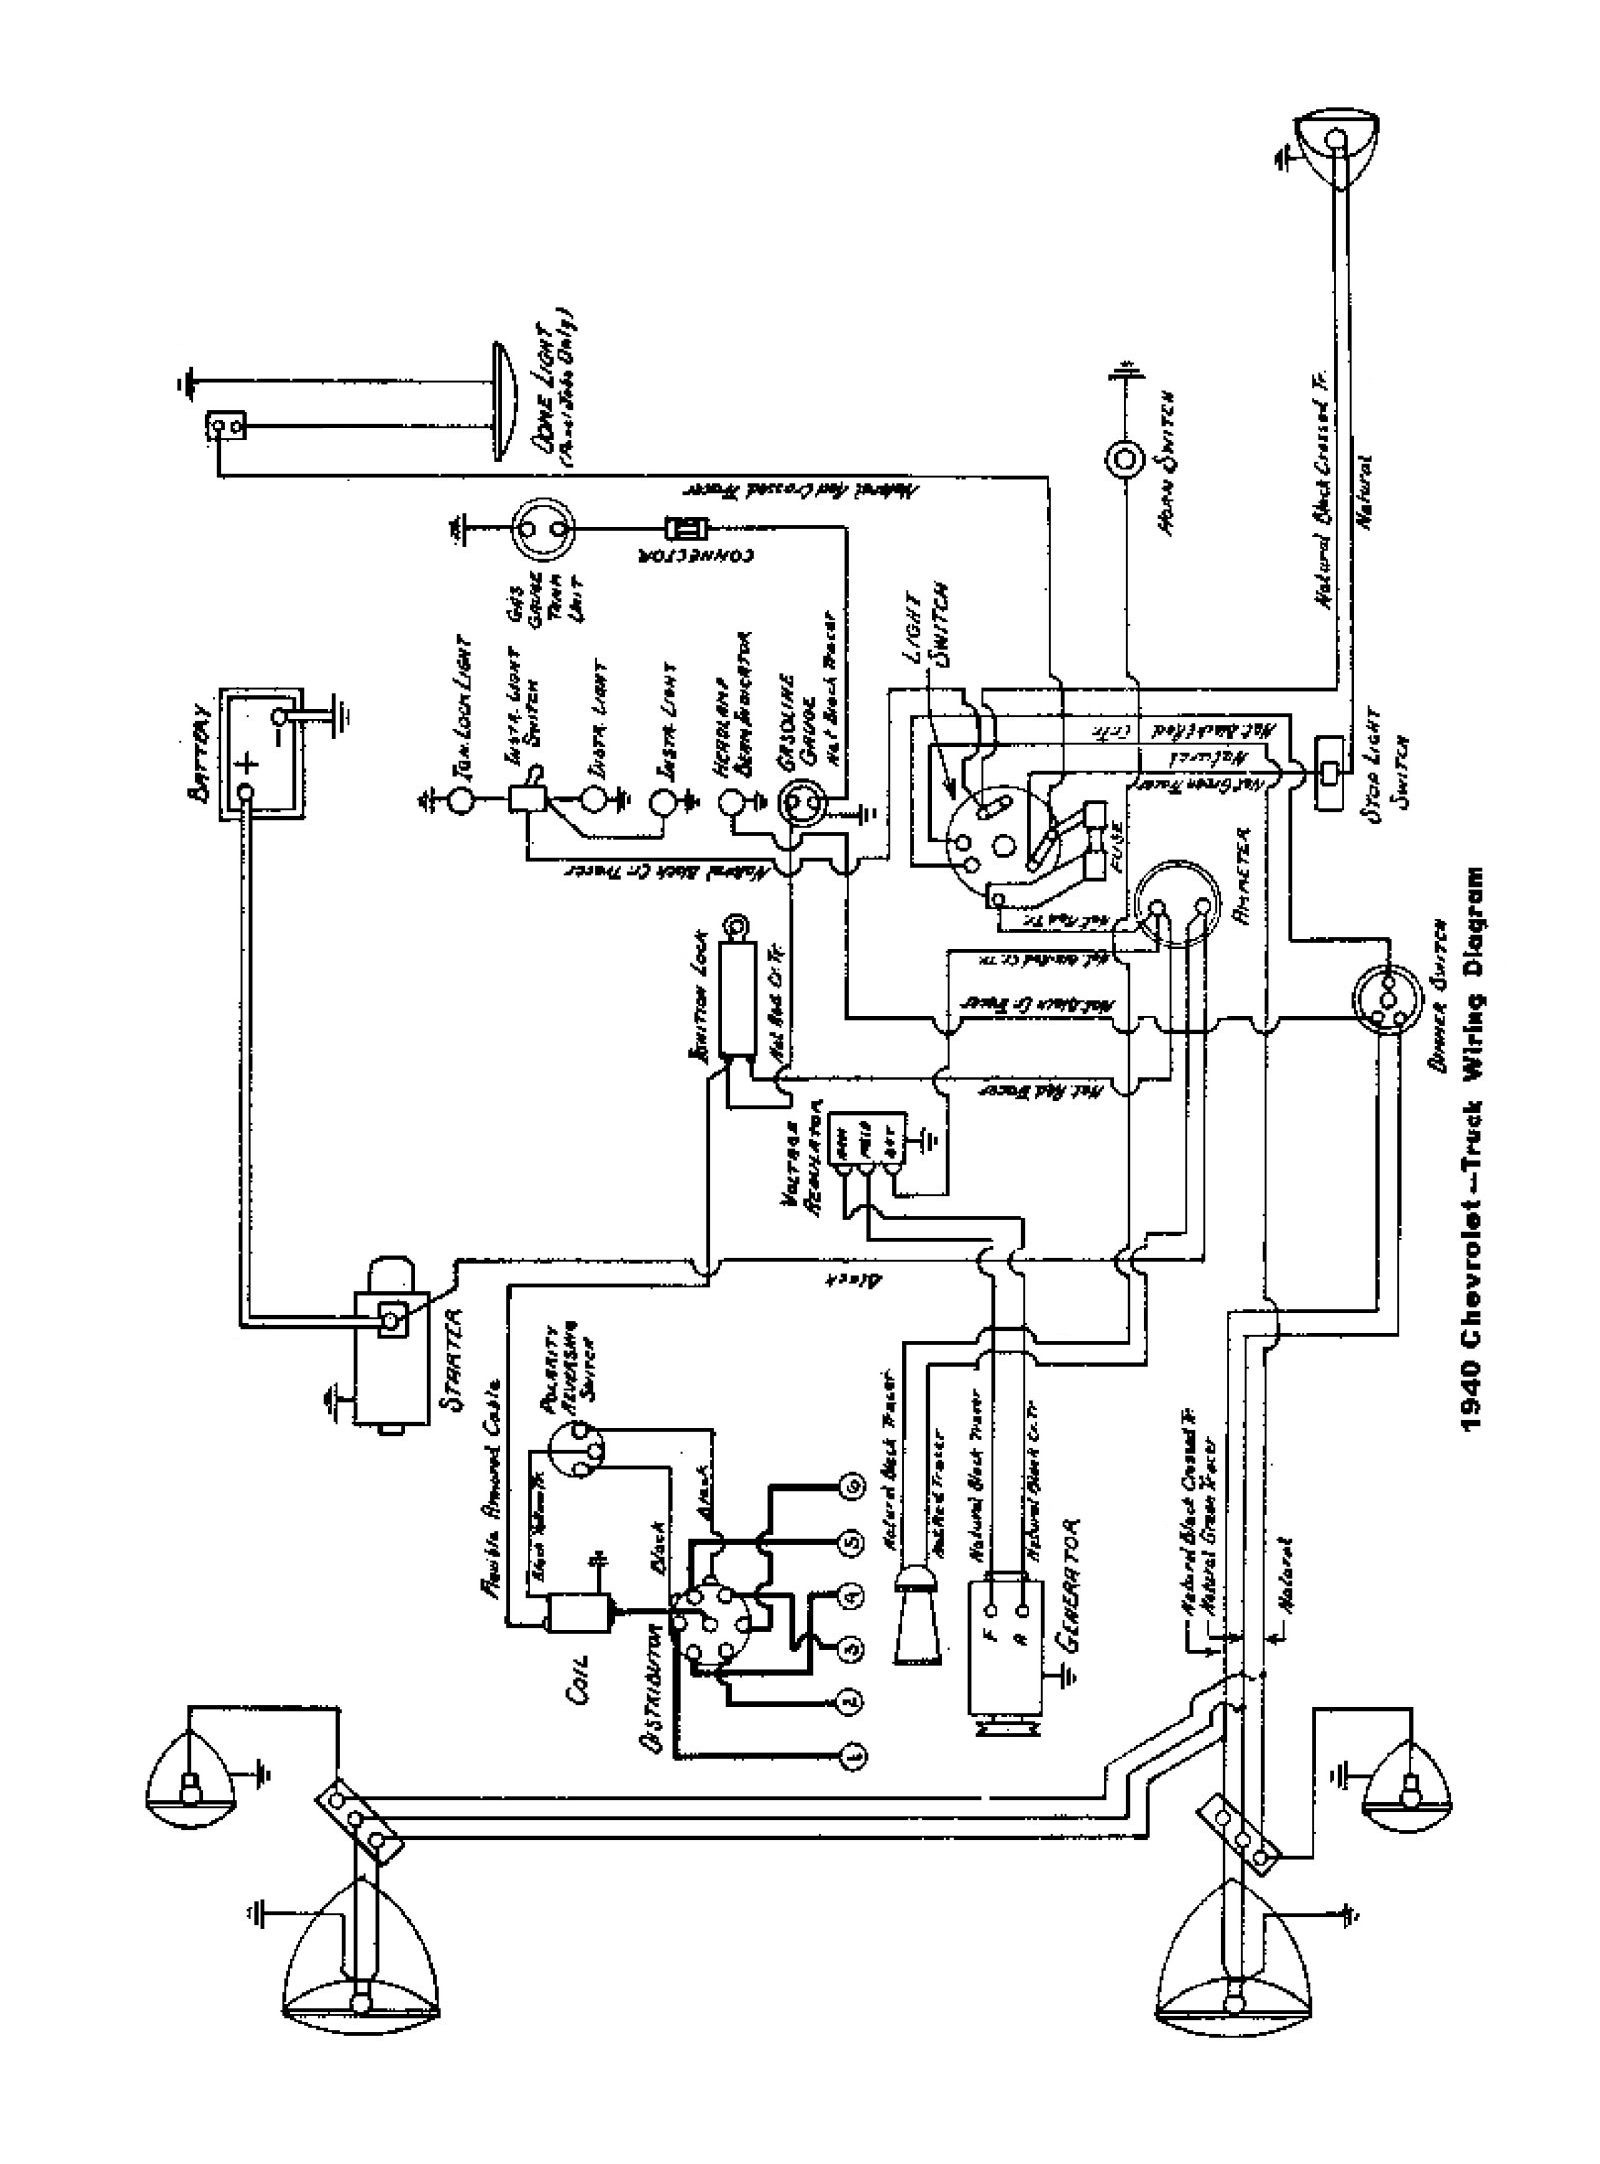 hight resolution of plymouth wiring harness manual e book 1948 plymouth wiring harness 1955 plymouth wire harness diagram wiring